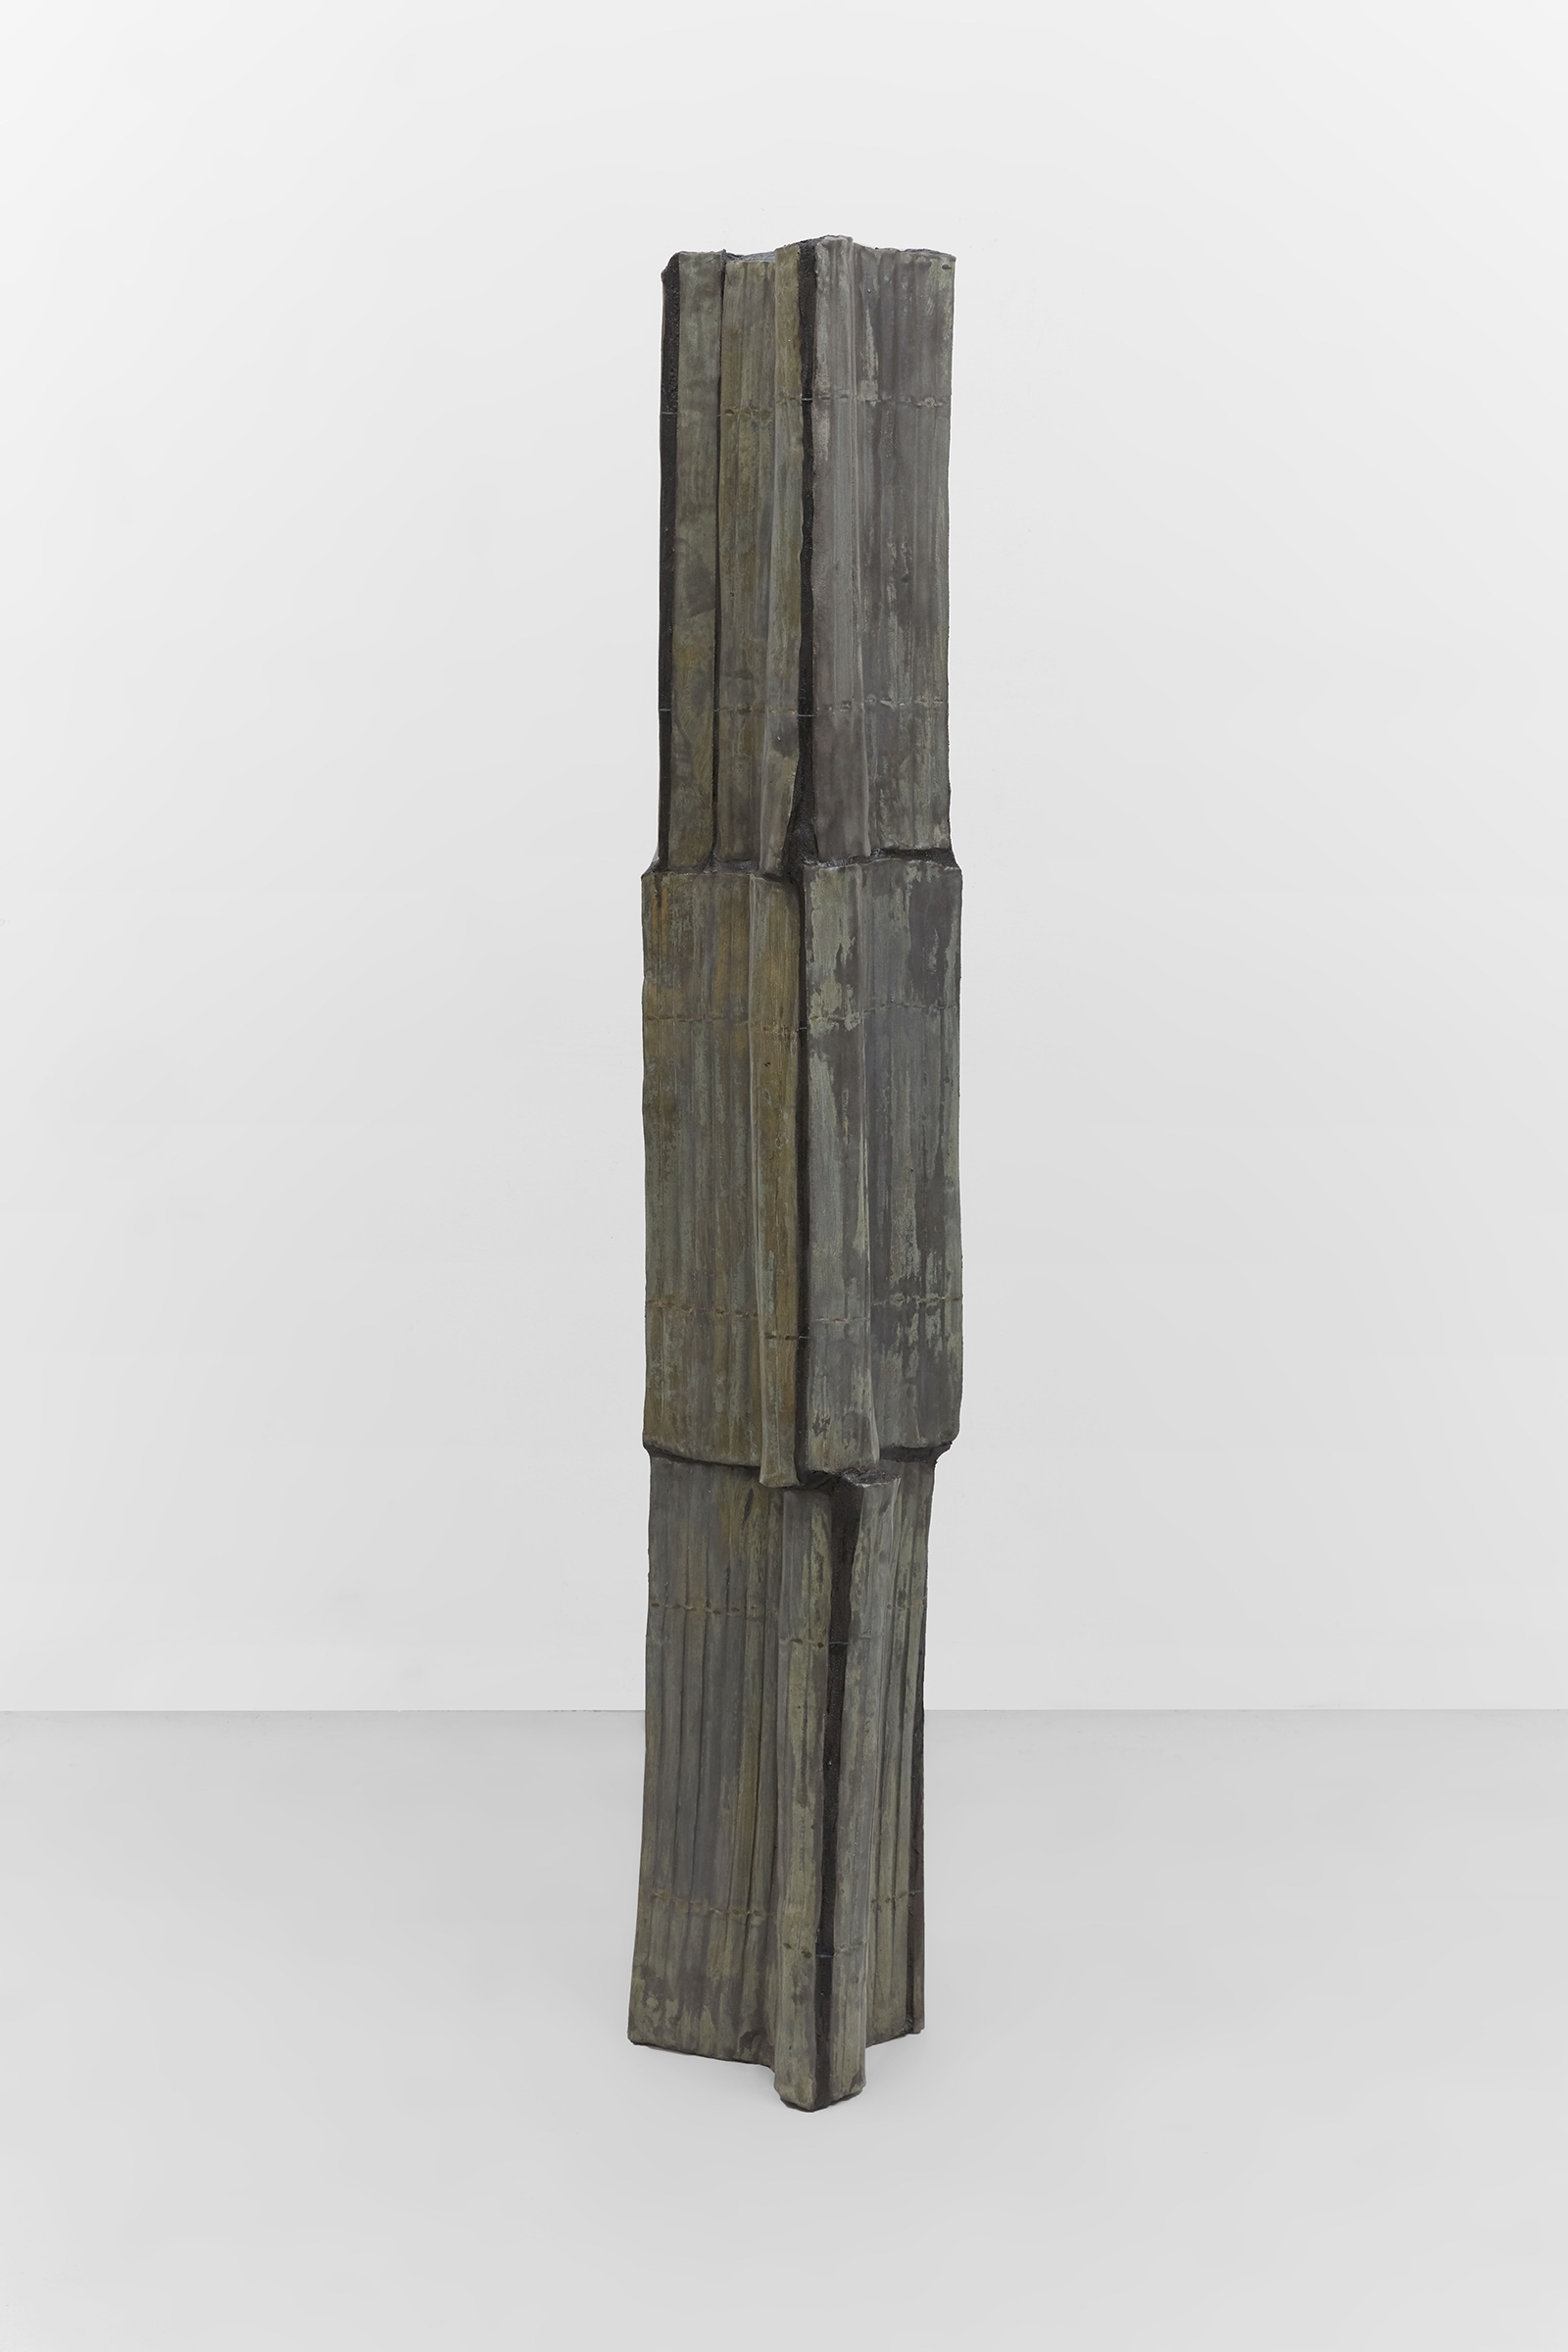 Anne Libby, Total Partial Annular, 2020, glazed ceramic, steel, sanded grout, 66h x 12w x 12d in.